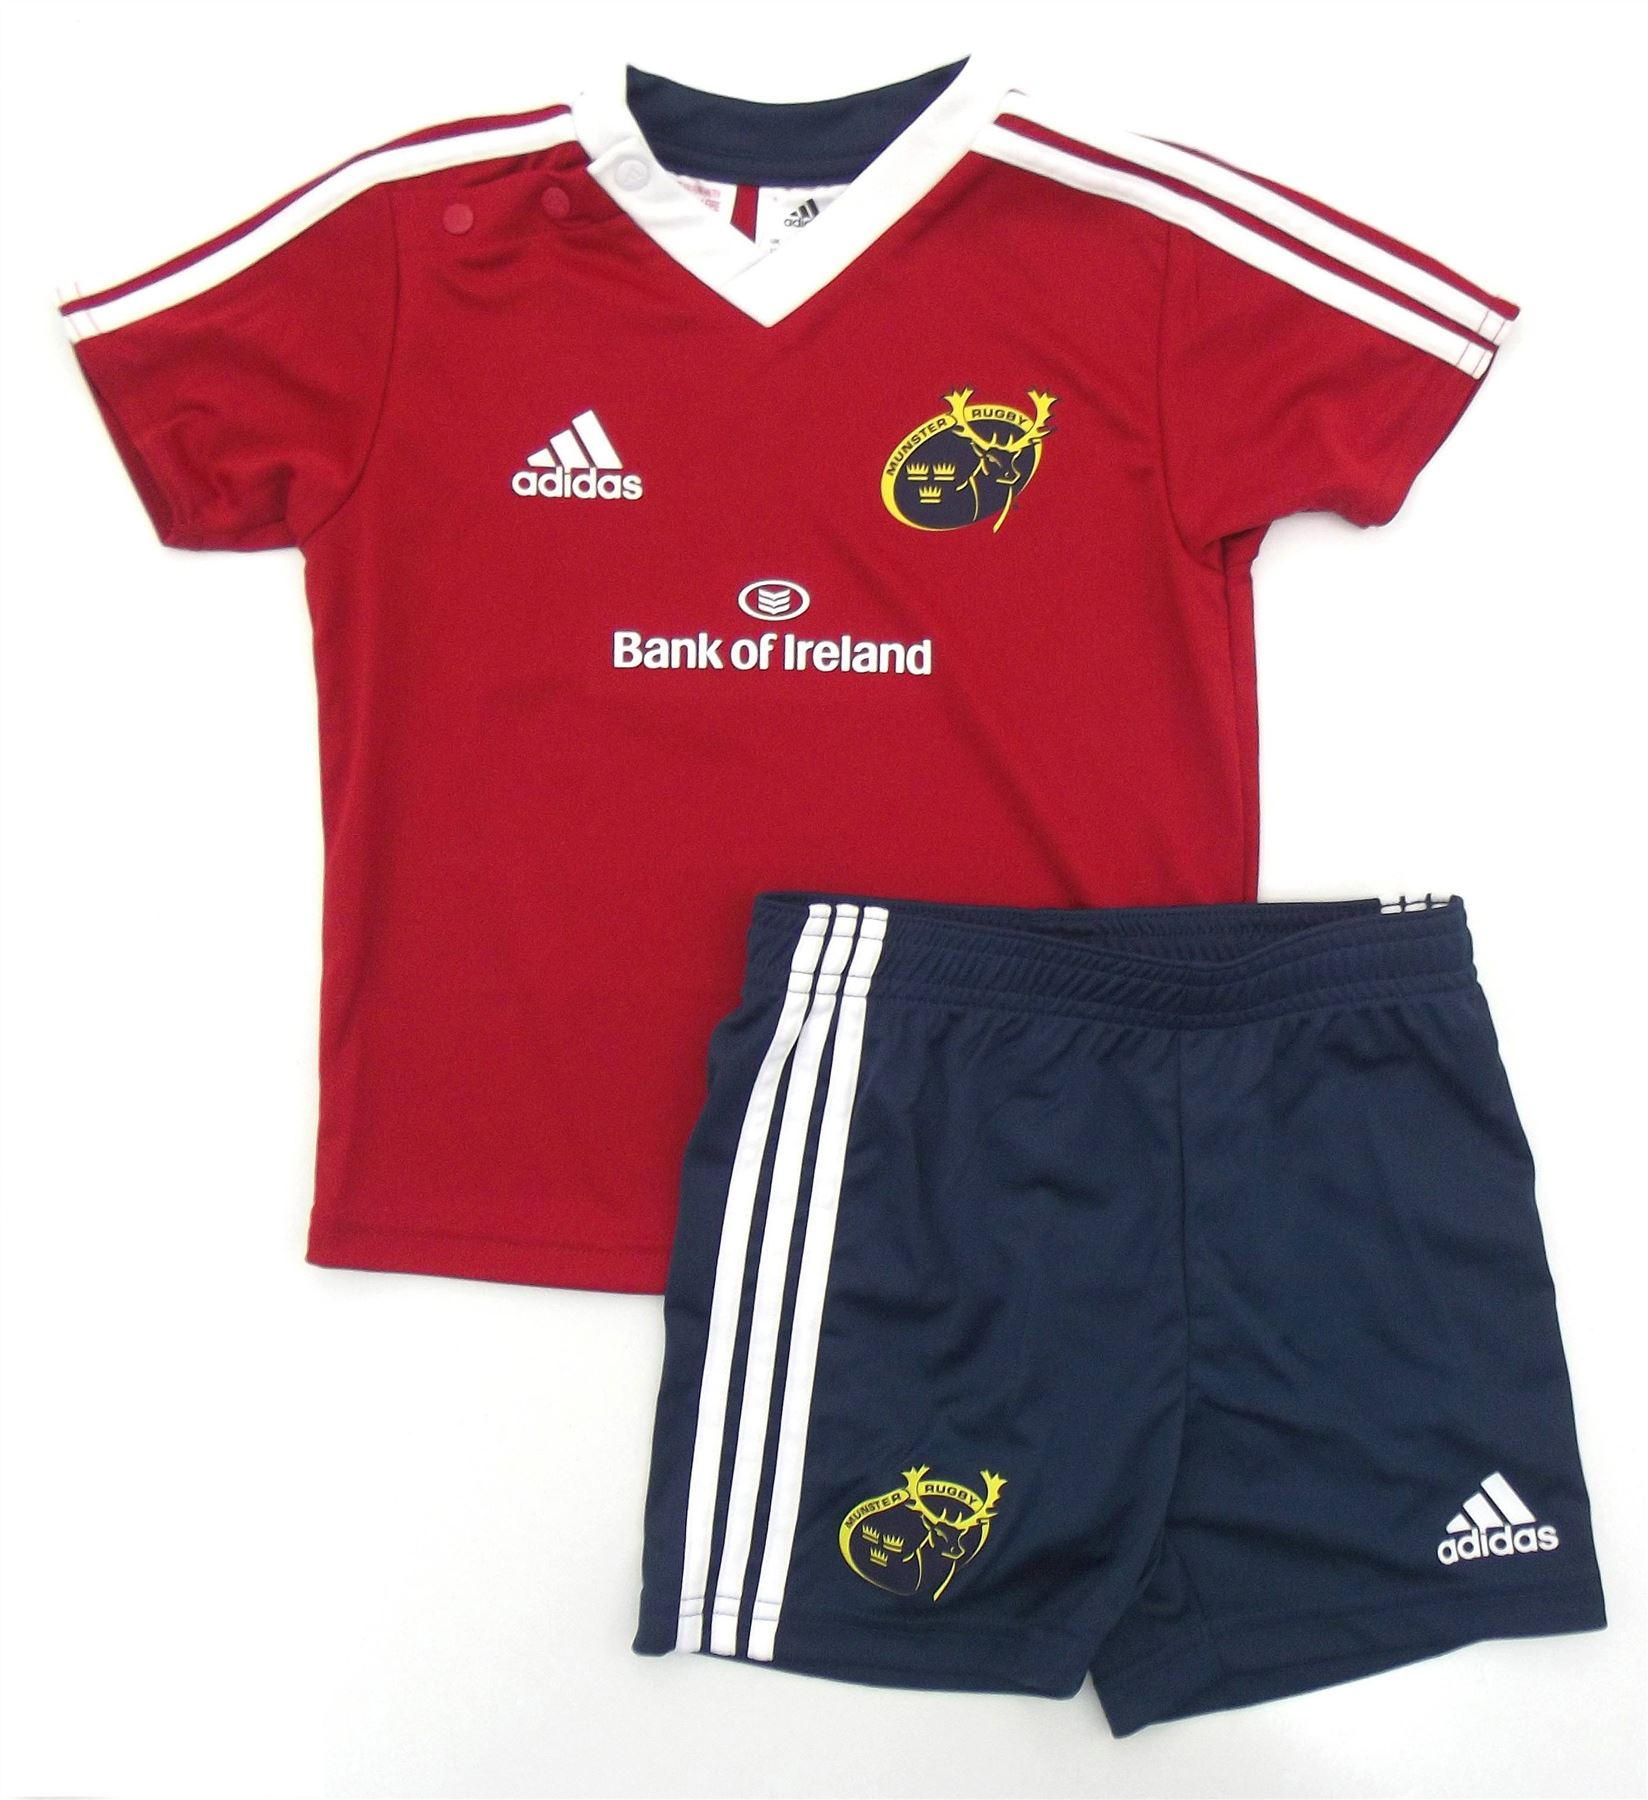 f5b5b87d7 ... adidas Munster Rugby Home Baby Kit Infants Red/Navy Jersey Shorts Set